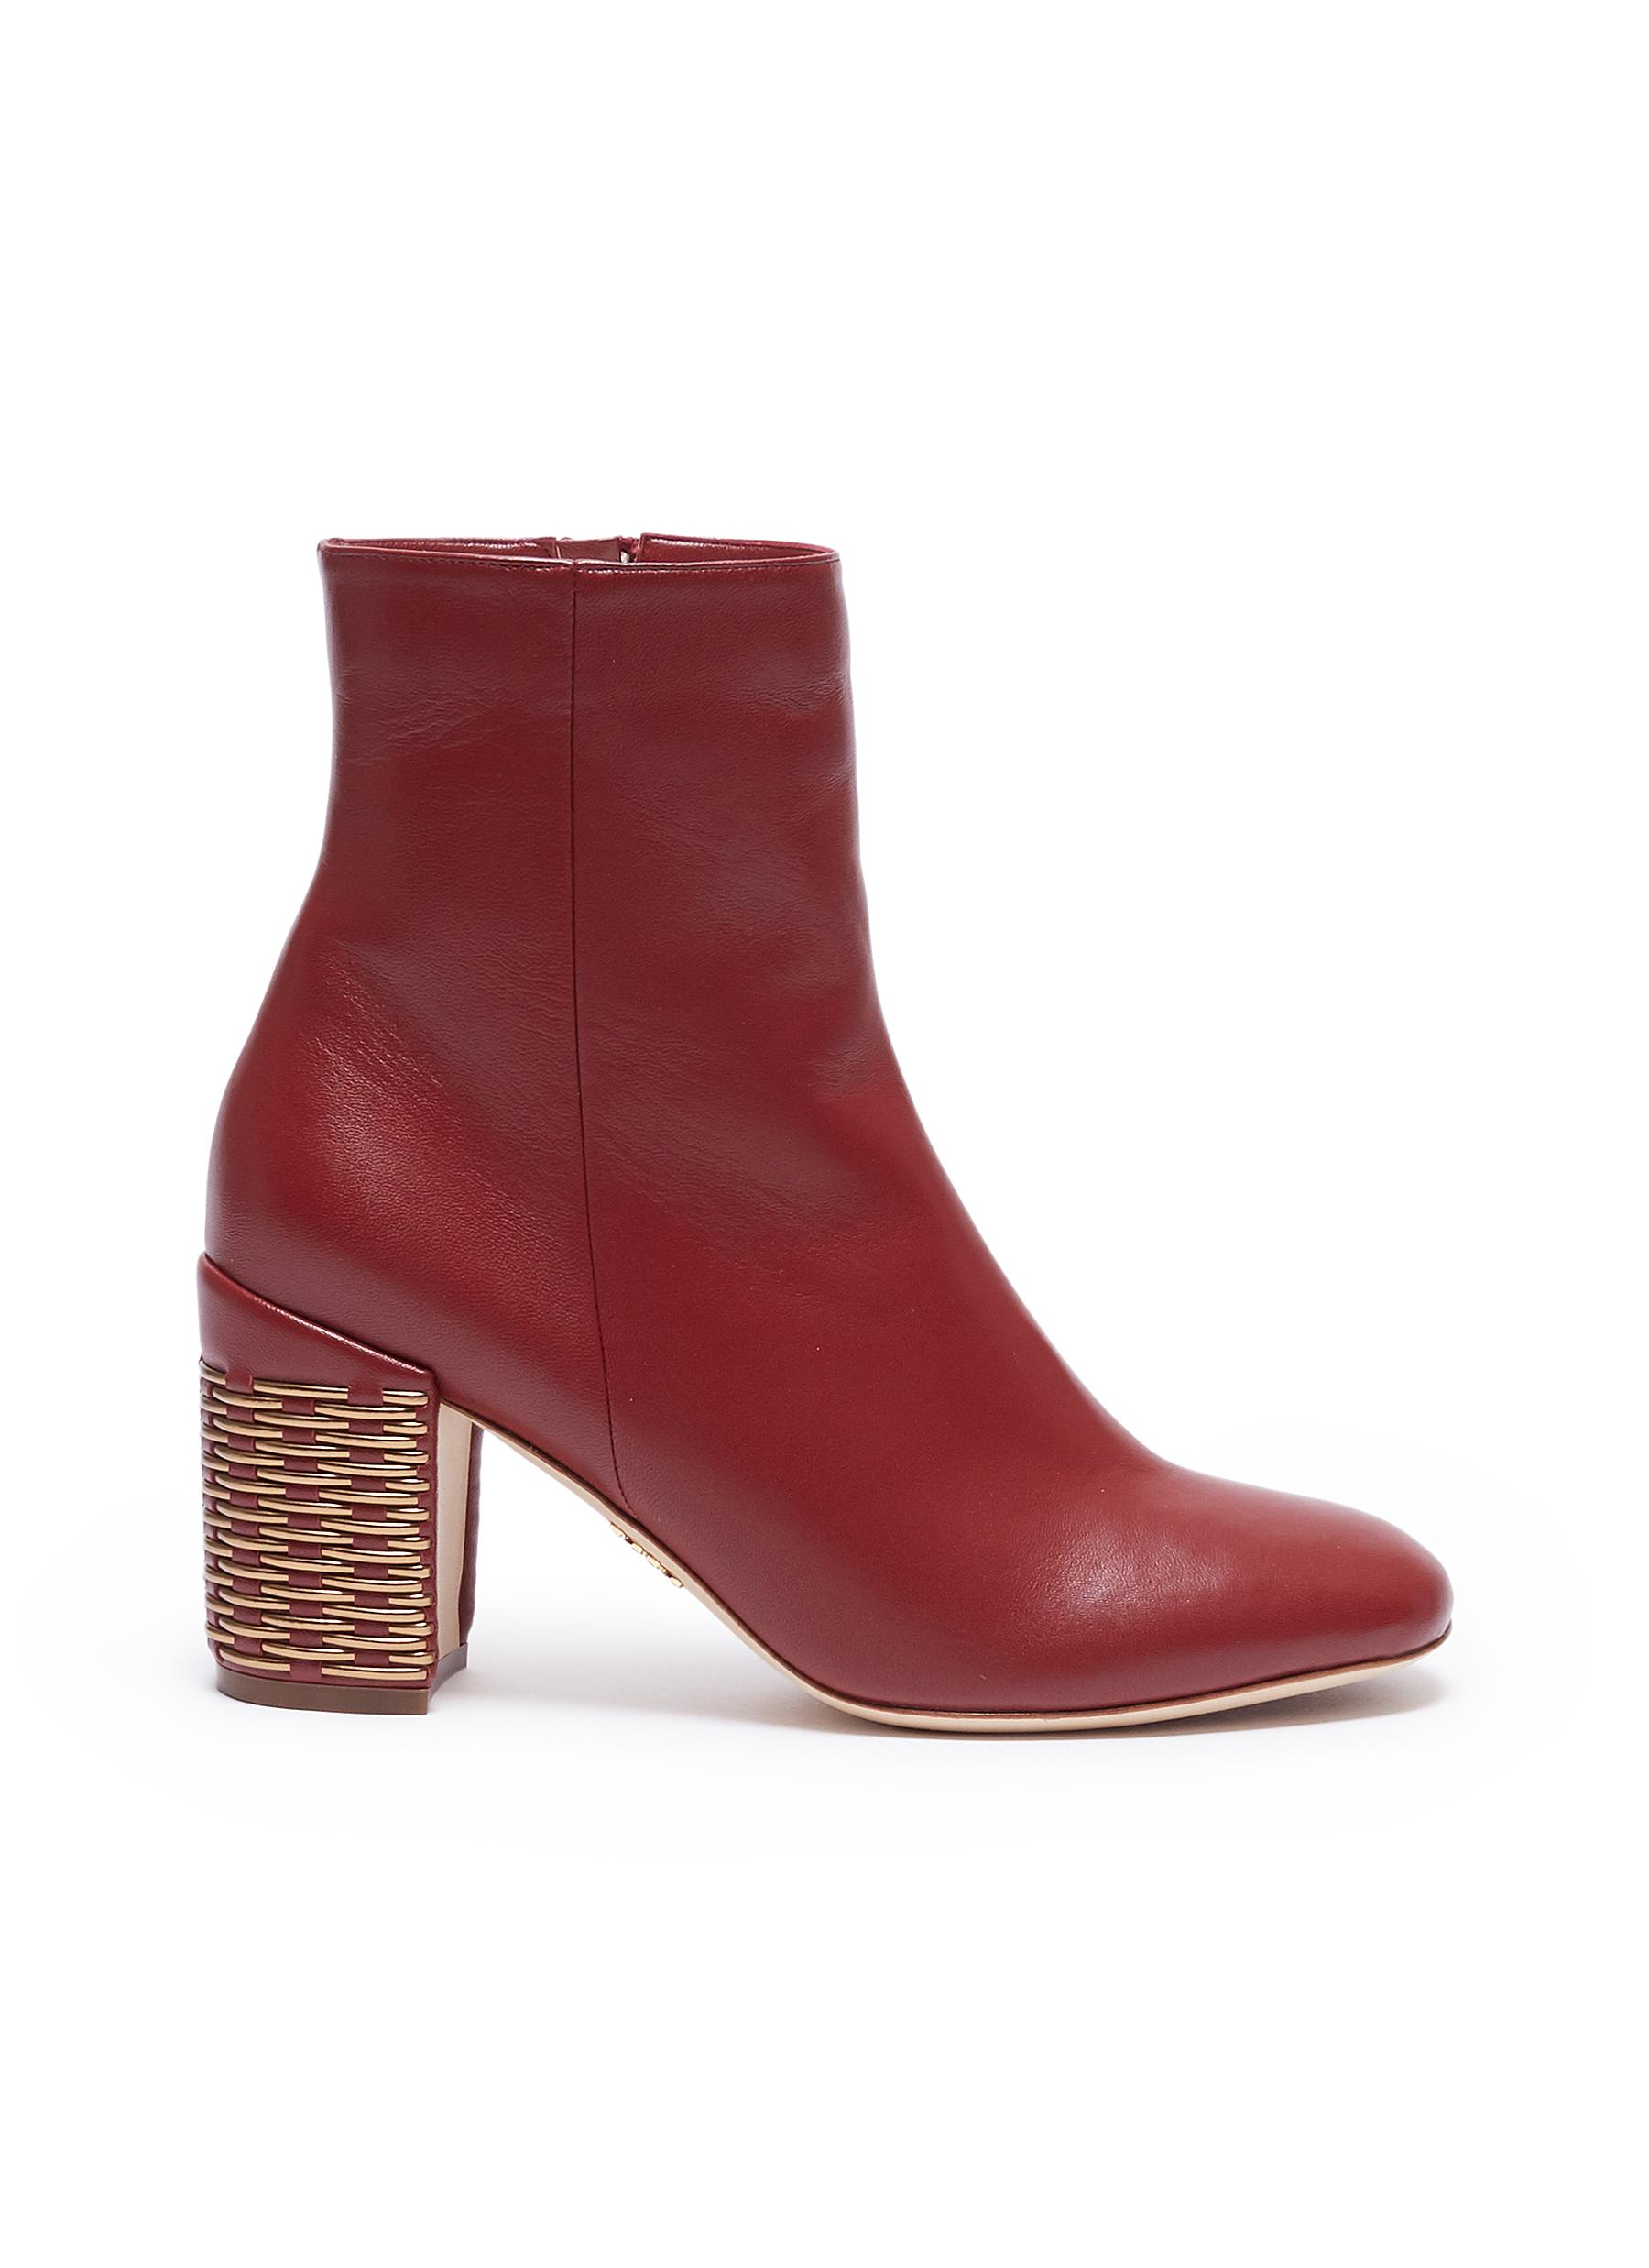 Weave effect heel leather ankle boots by RODO